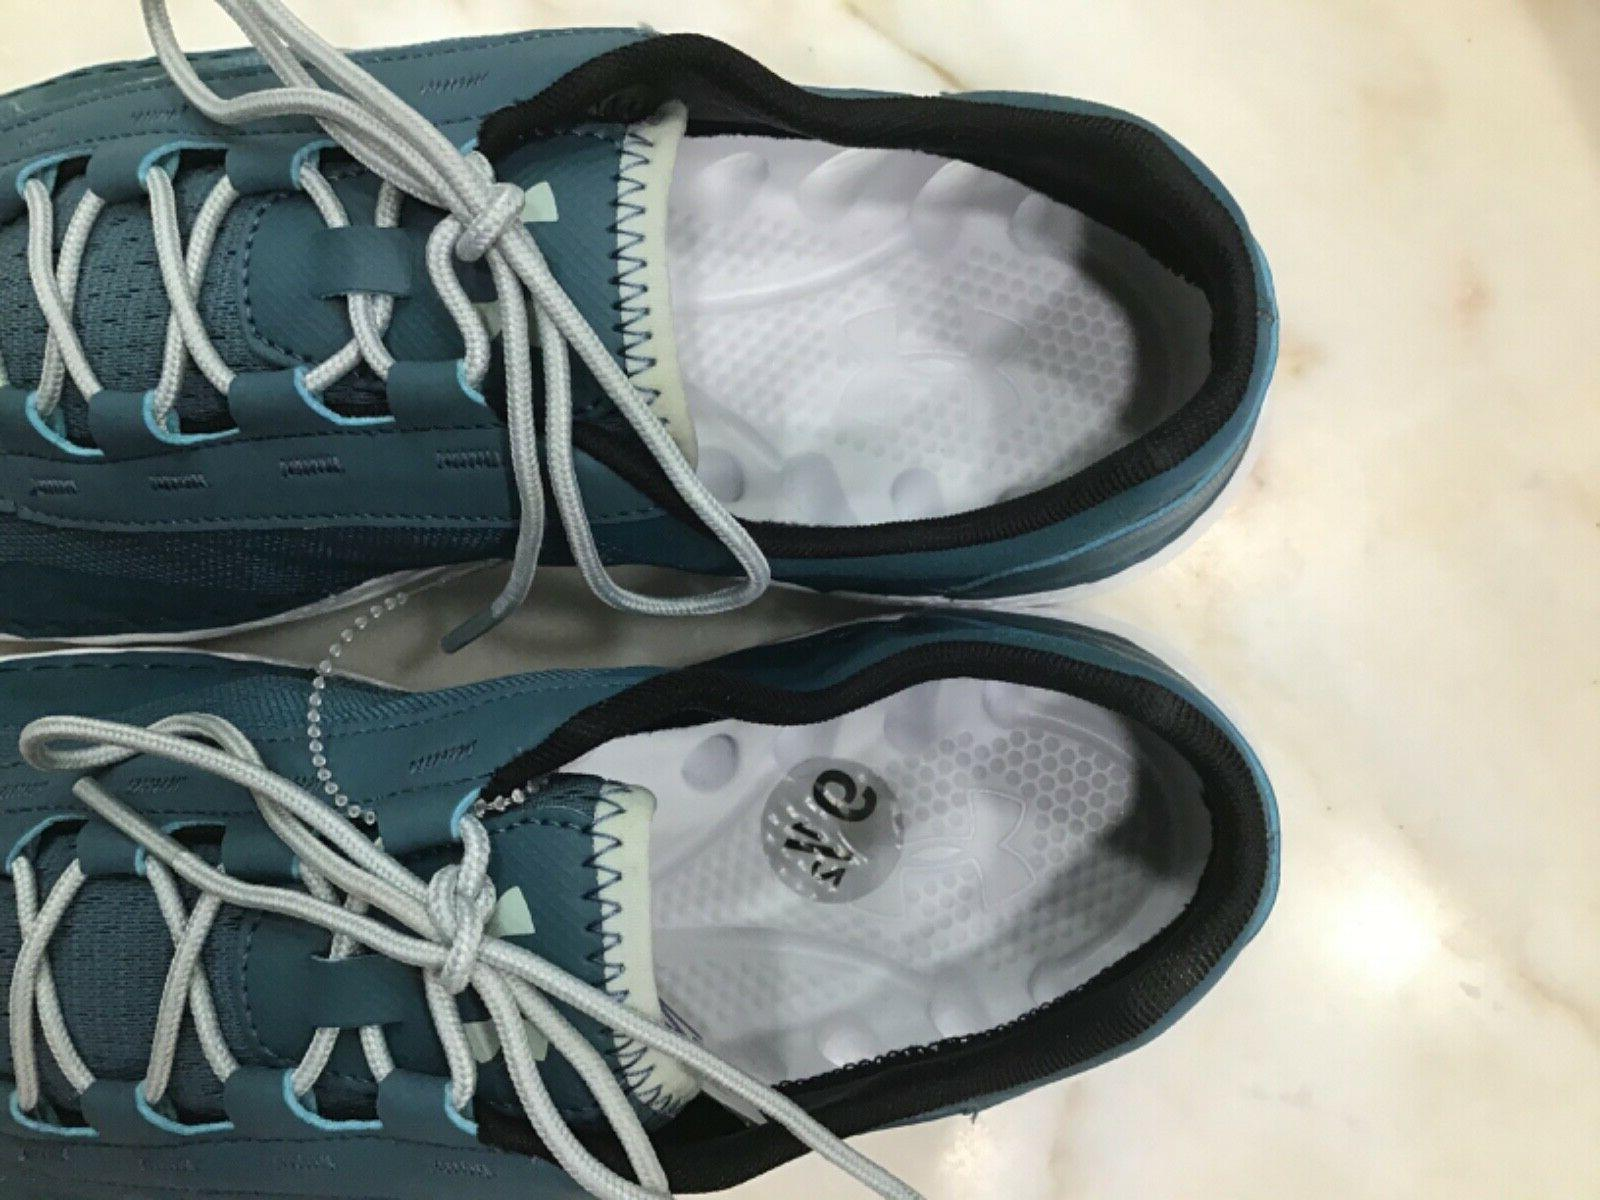 UNDER FISHING Water SHOES 1268869-298 *NO